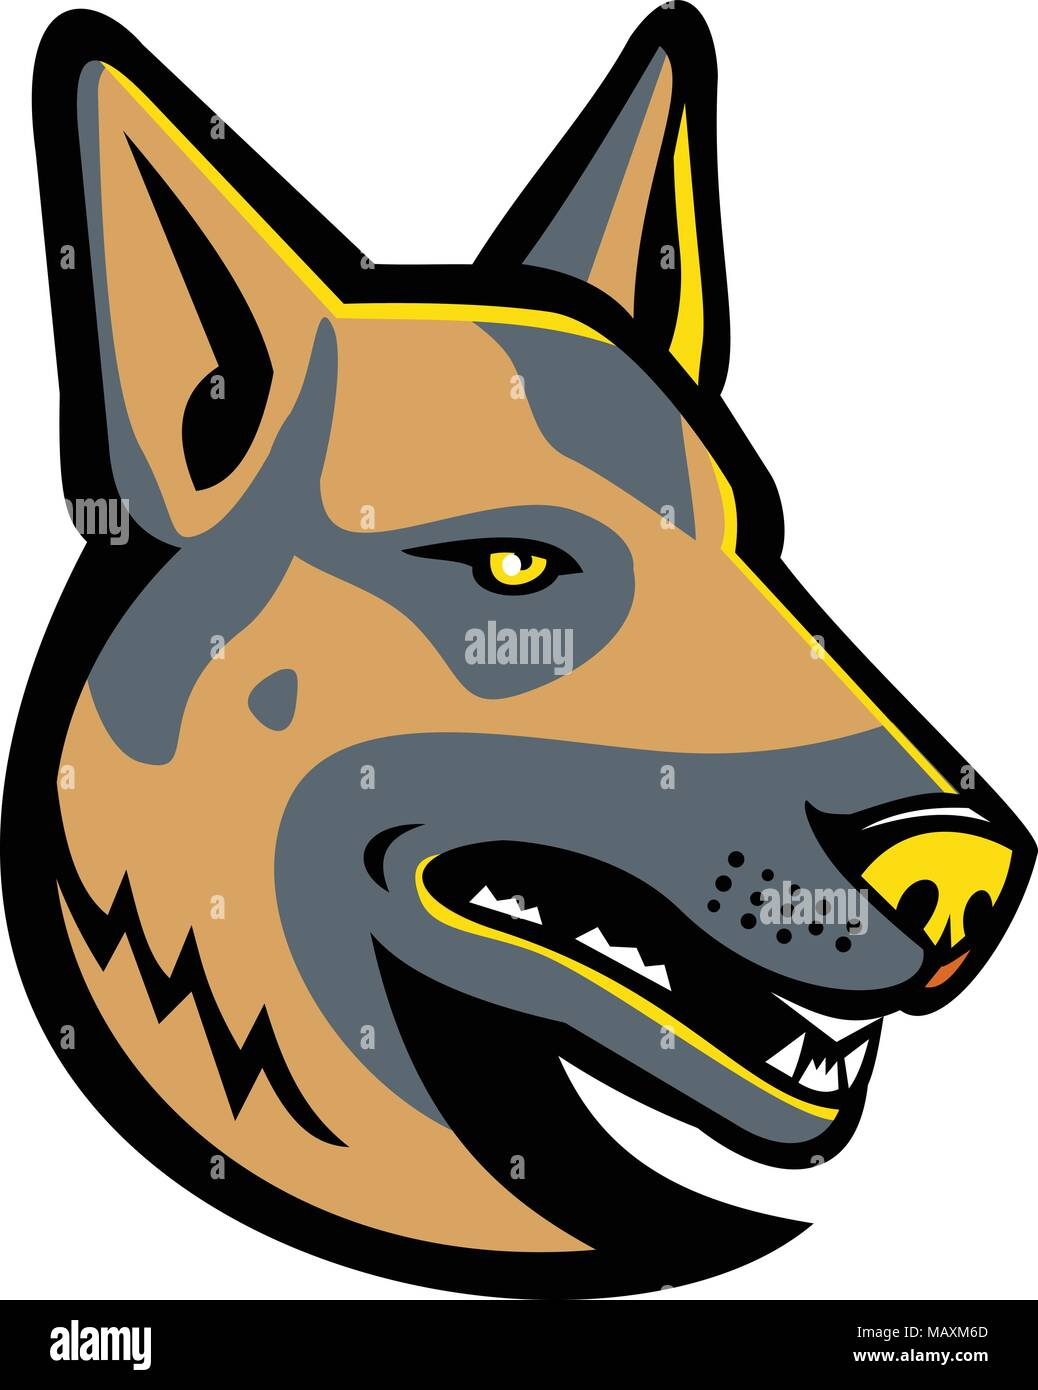 Mascot icon illustration of head of a German Shepherd, GSD, Alsatian wolf dog Berger, Allemand ,Deutscher, a breed of medium to large-sized working do - Stock Vector